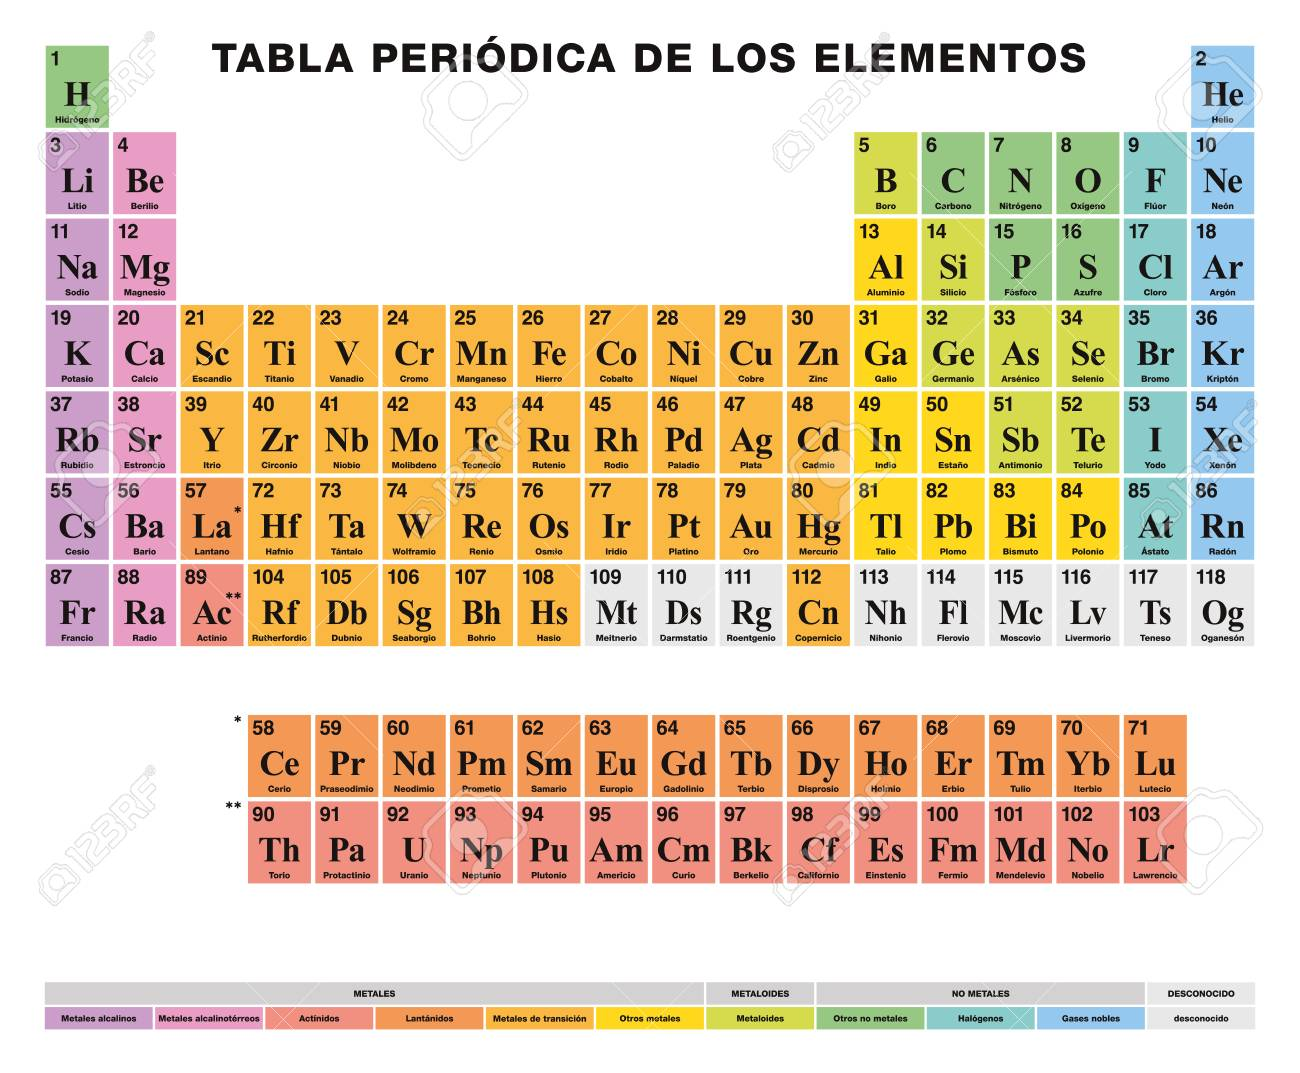 Periodic table of the elements spanish labeling tabular periodic table of the elements spanish labeling tabular arrangement of 118 chemical elements urtaz Choice Image